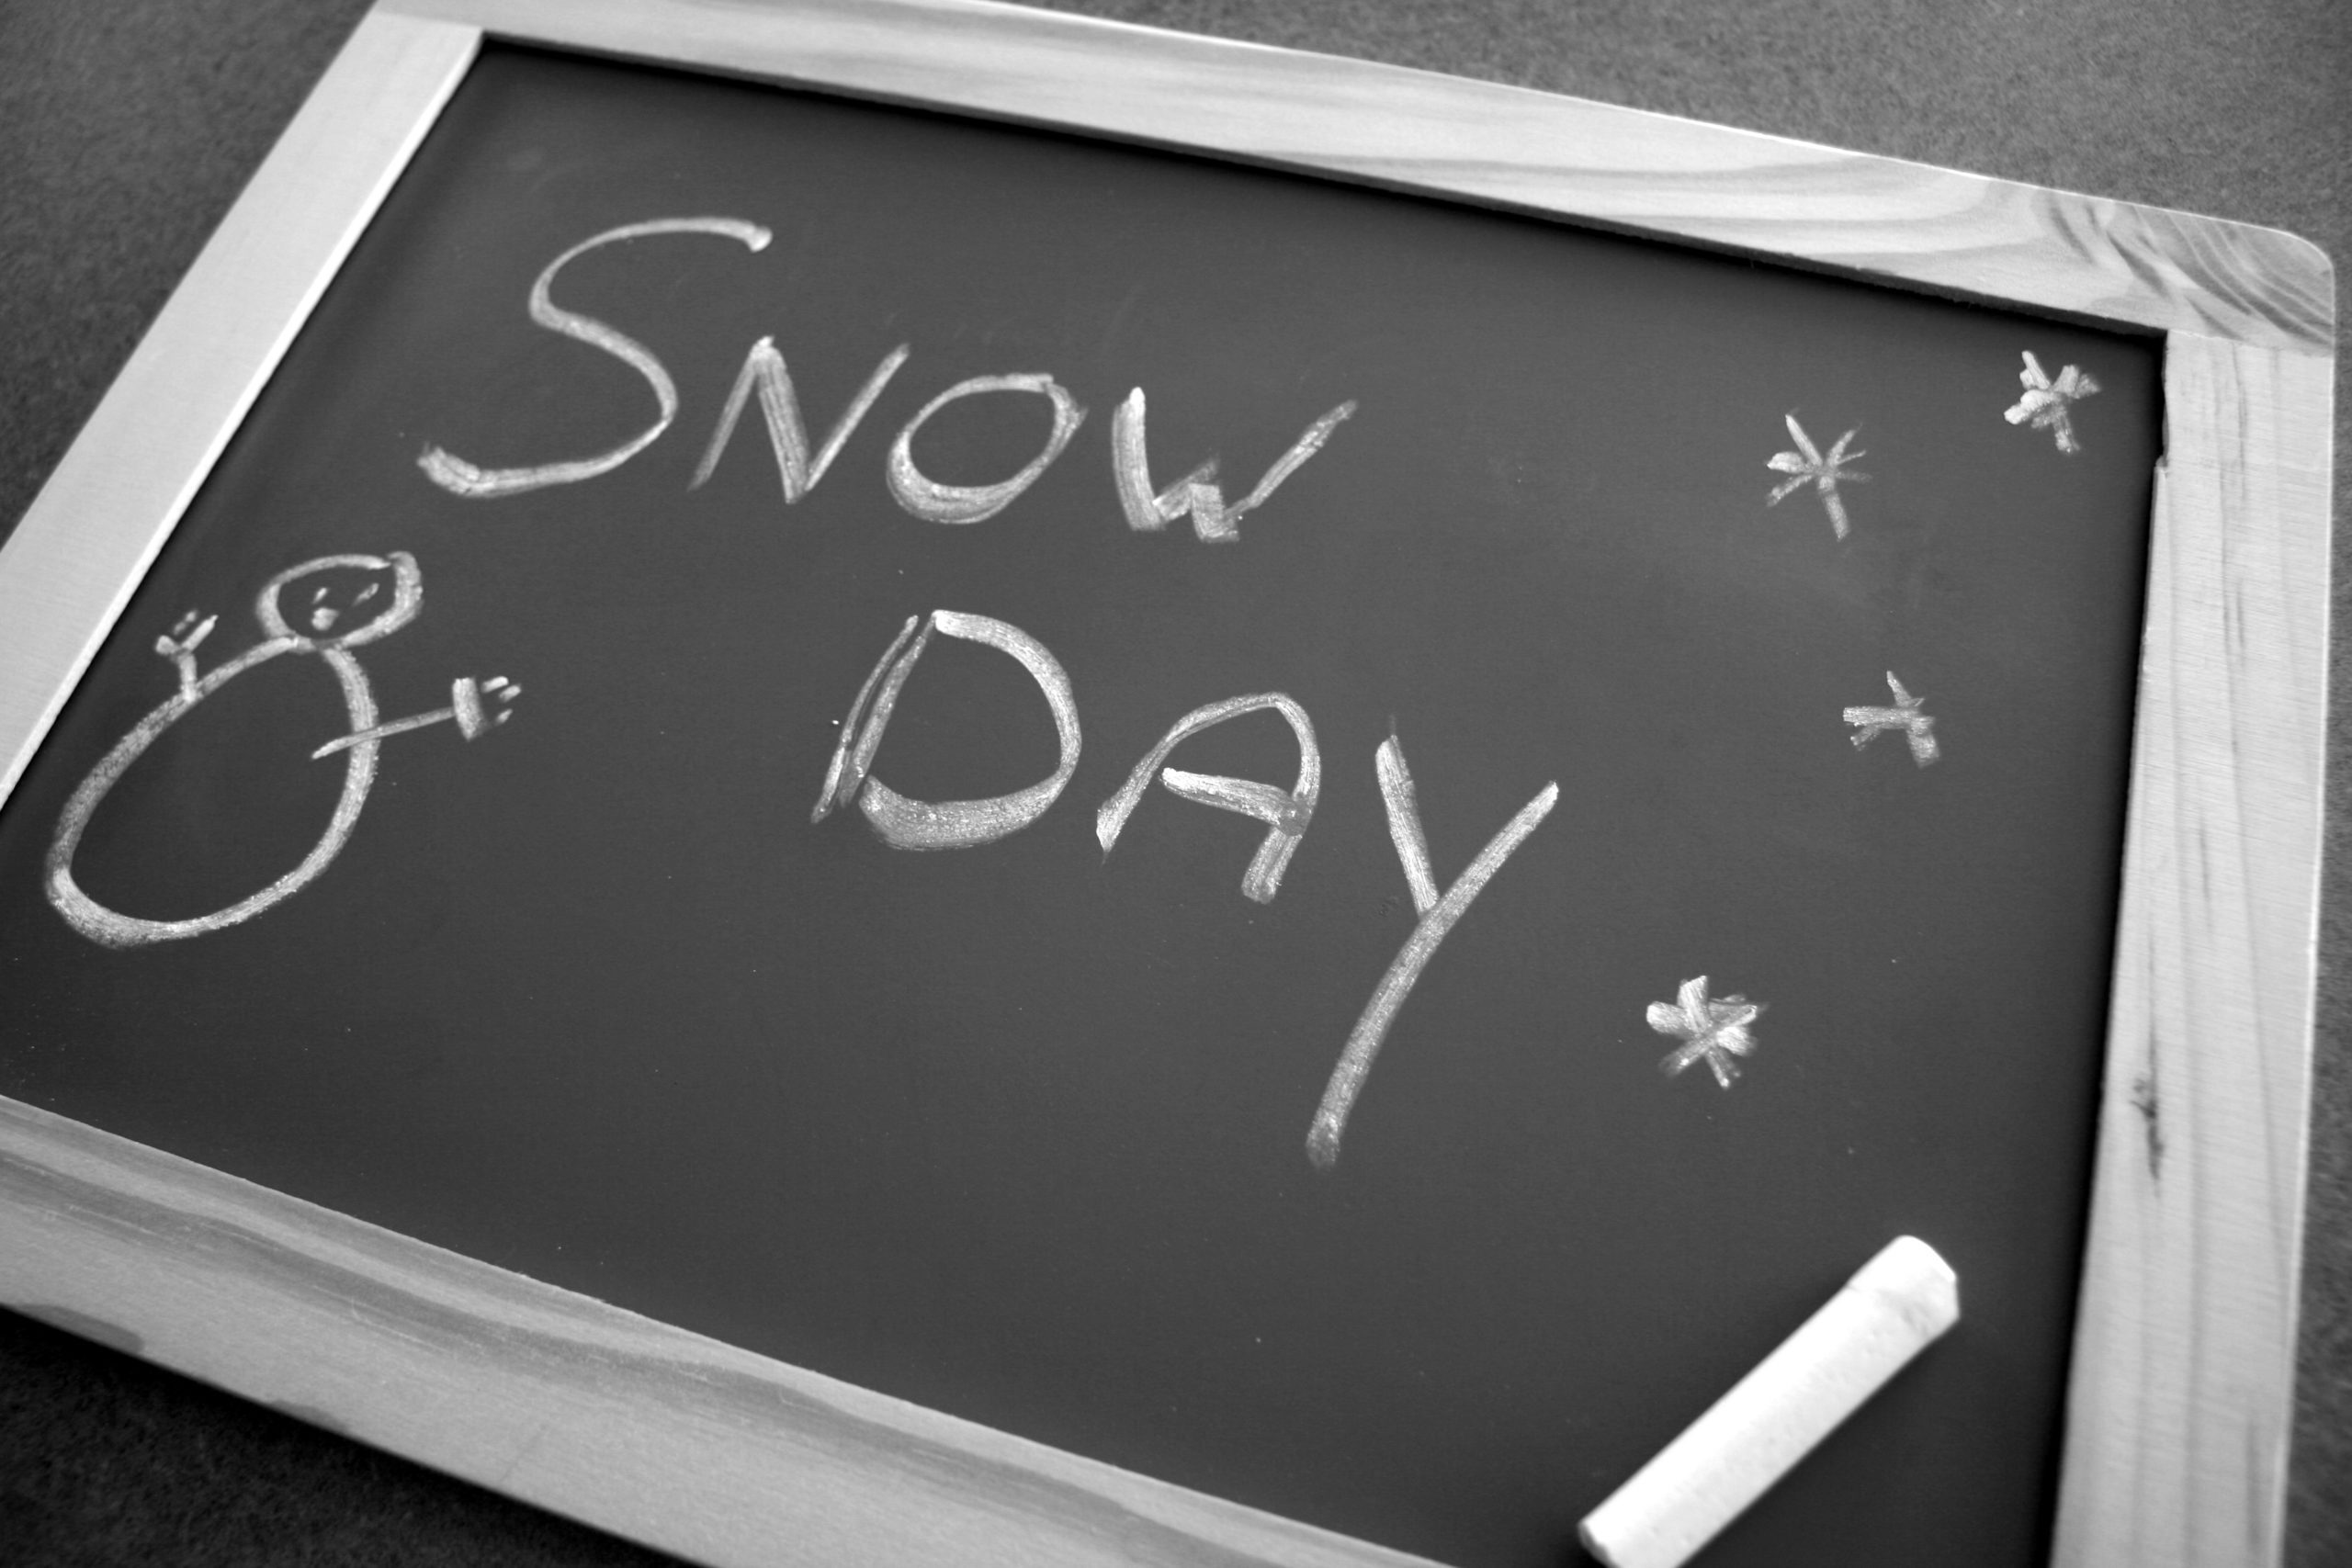 Snow Day written on chalkboard with drawing of snowman